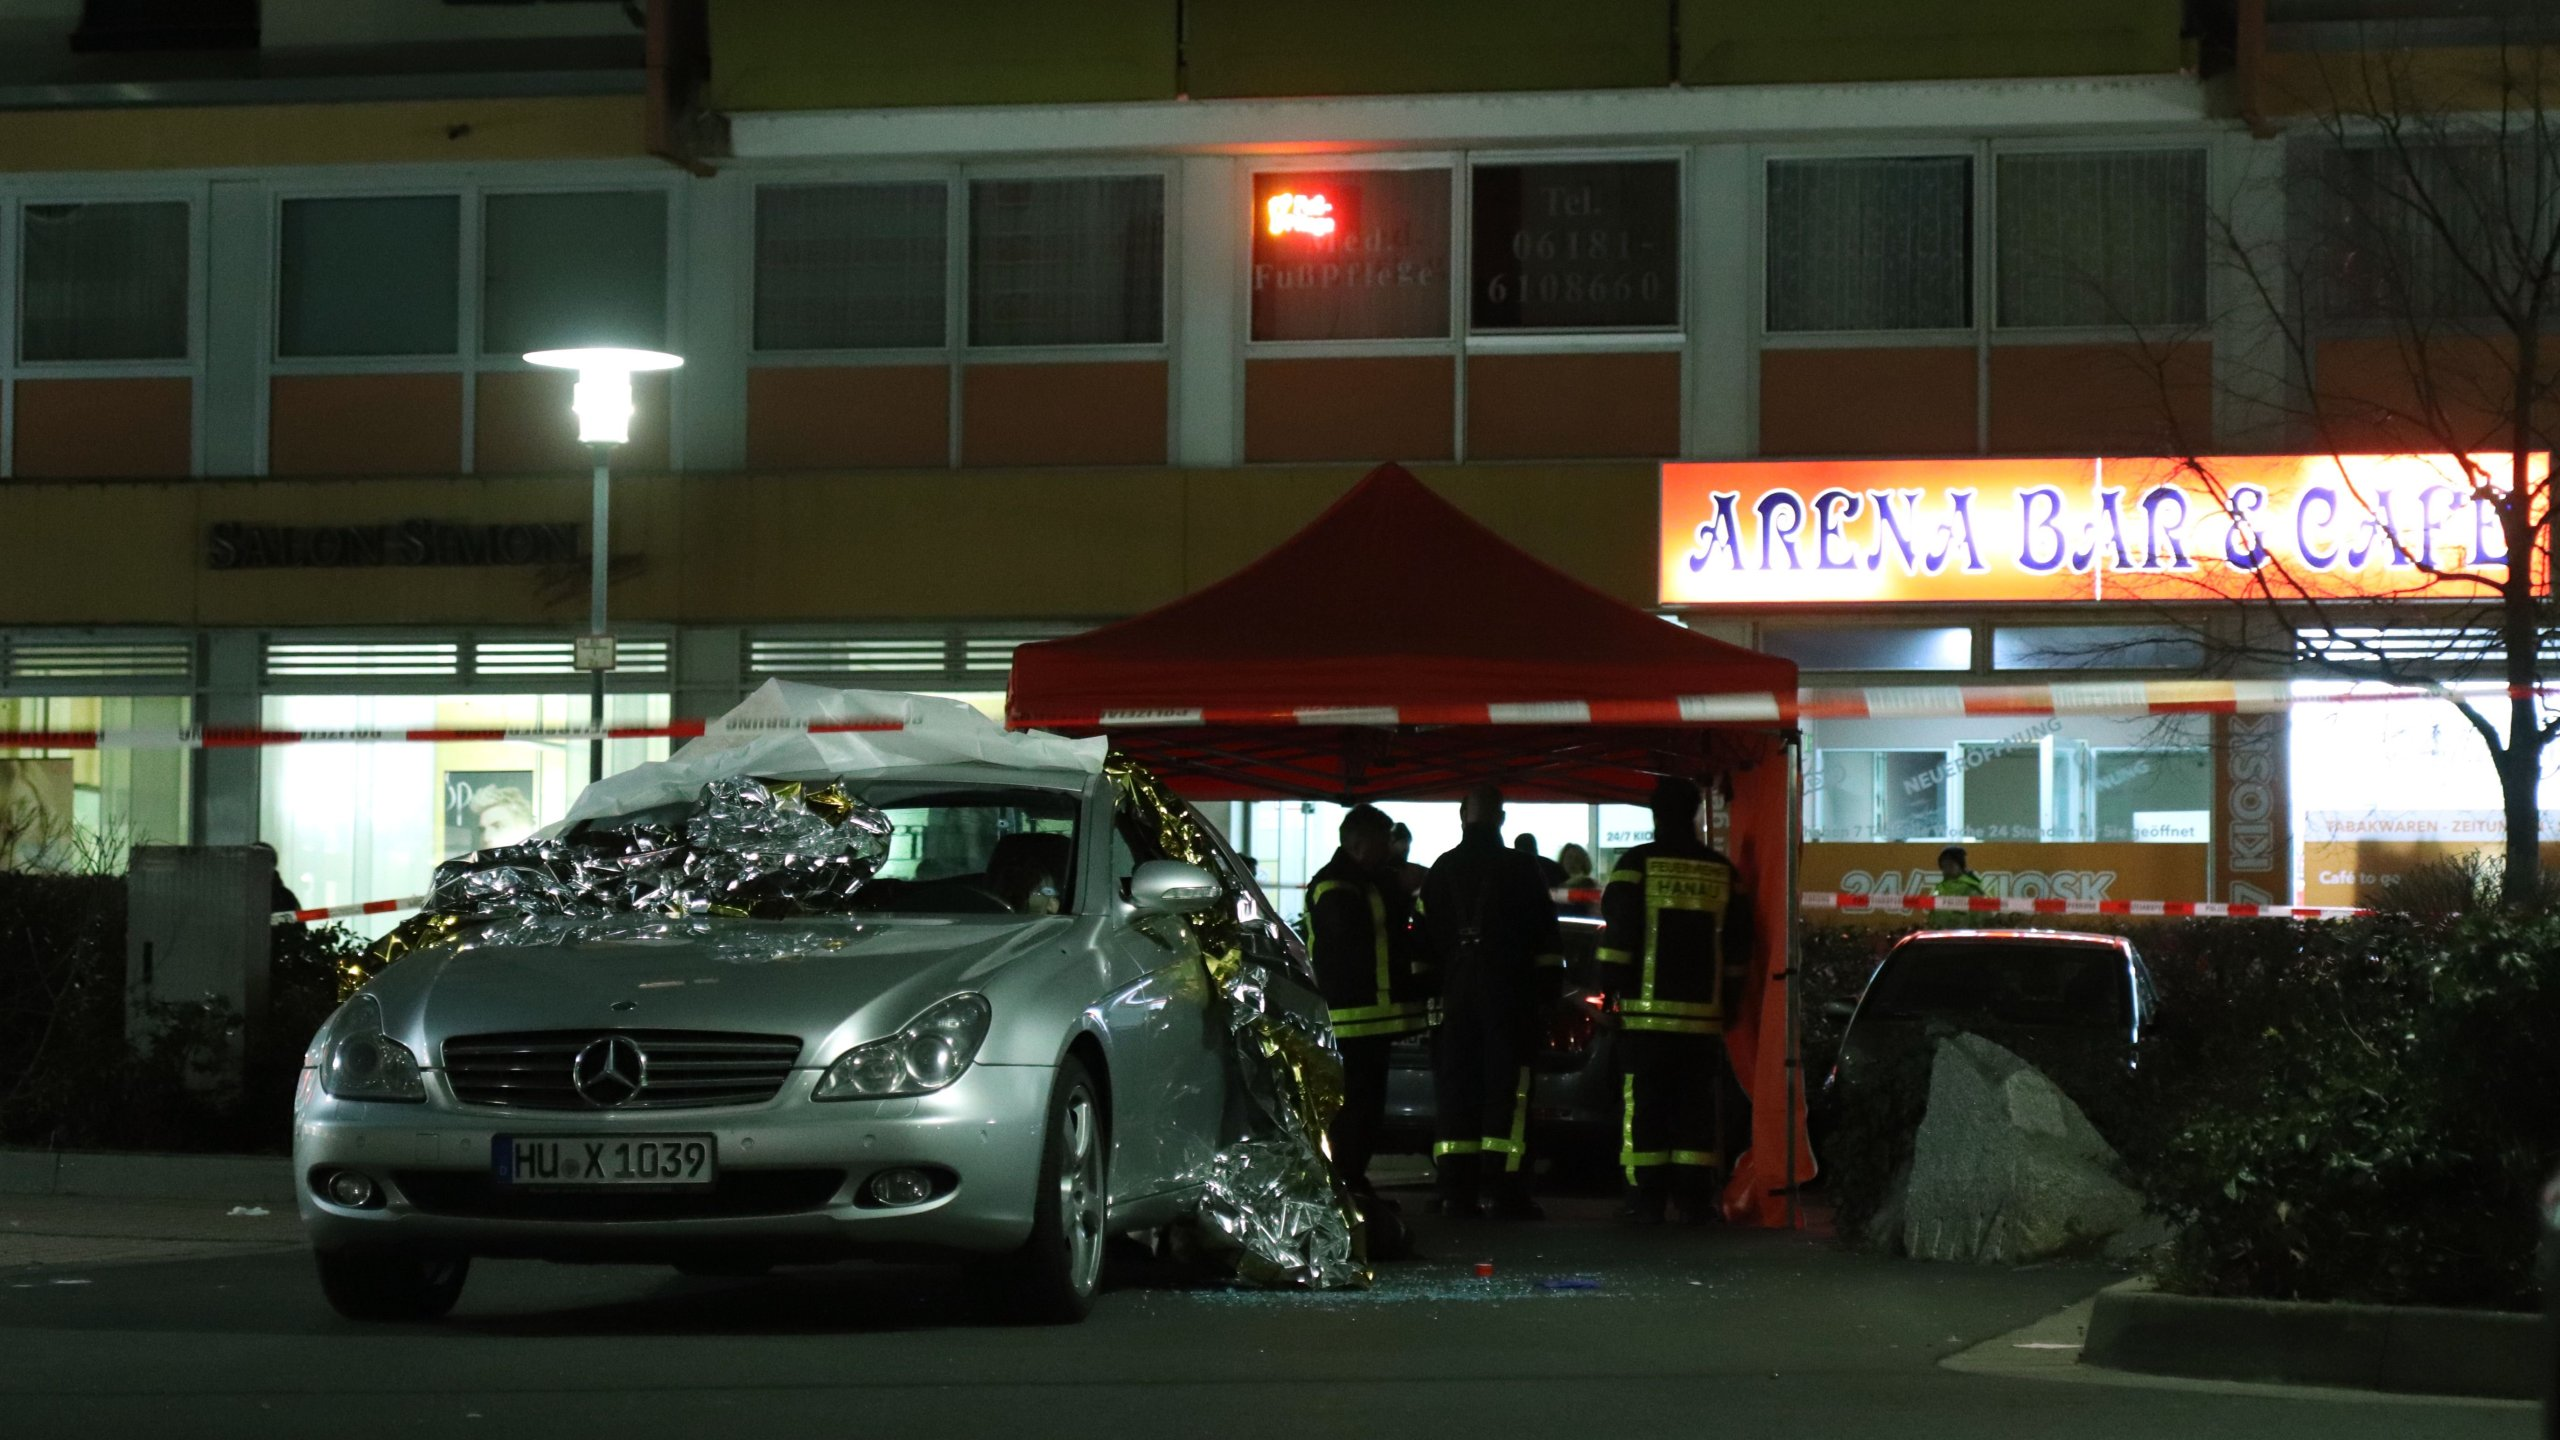 Emergency services work at the scene of the shooting in Hanau, western Germany, on Feb. 20, 2020. (Credit: YANN SCHREIBER/AFP via Getty Images)